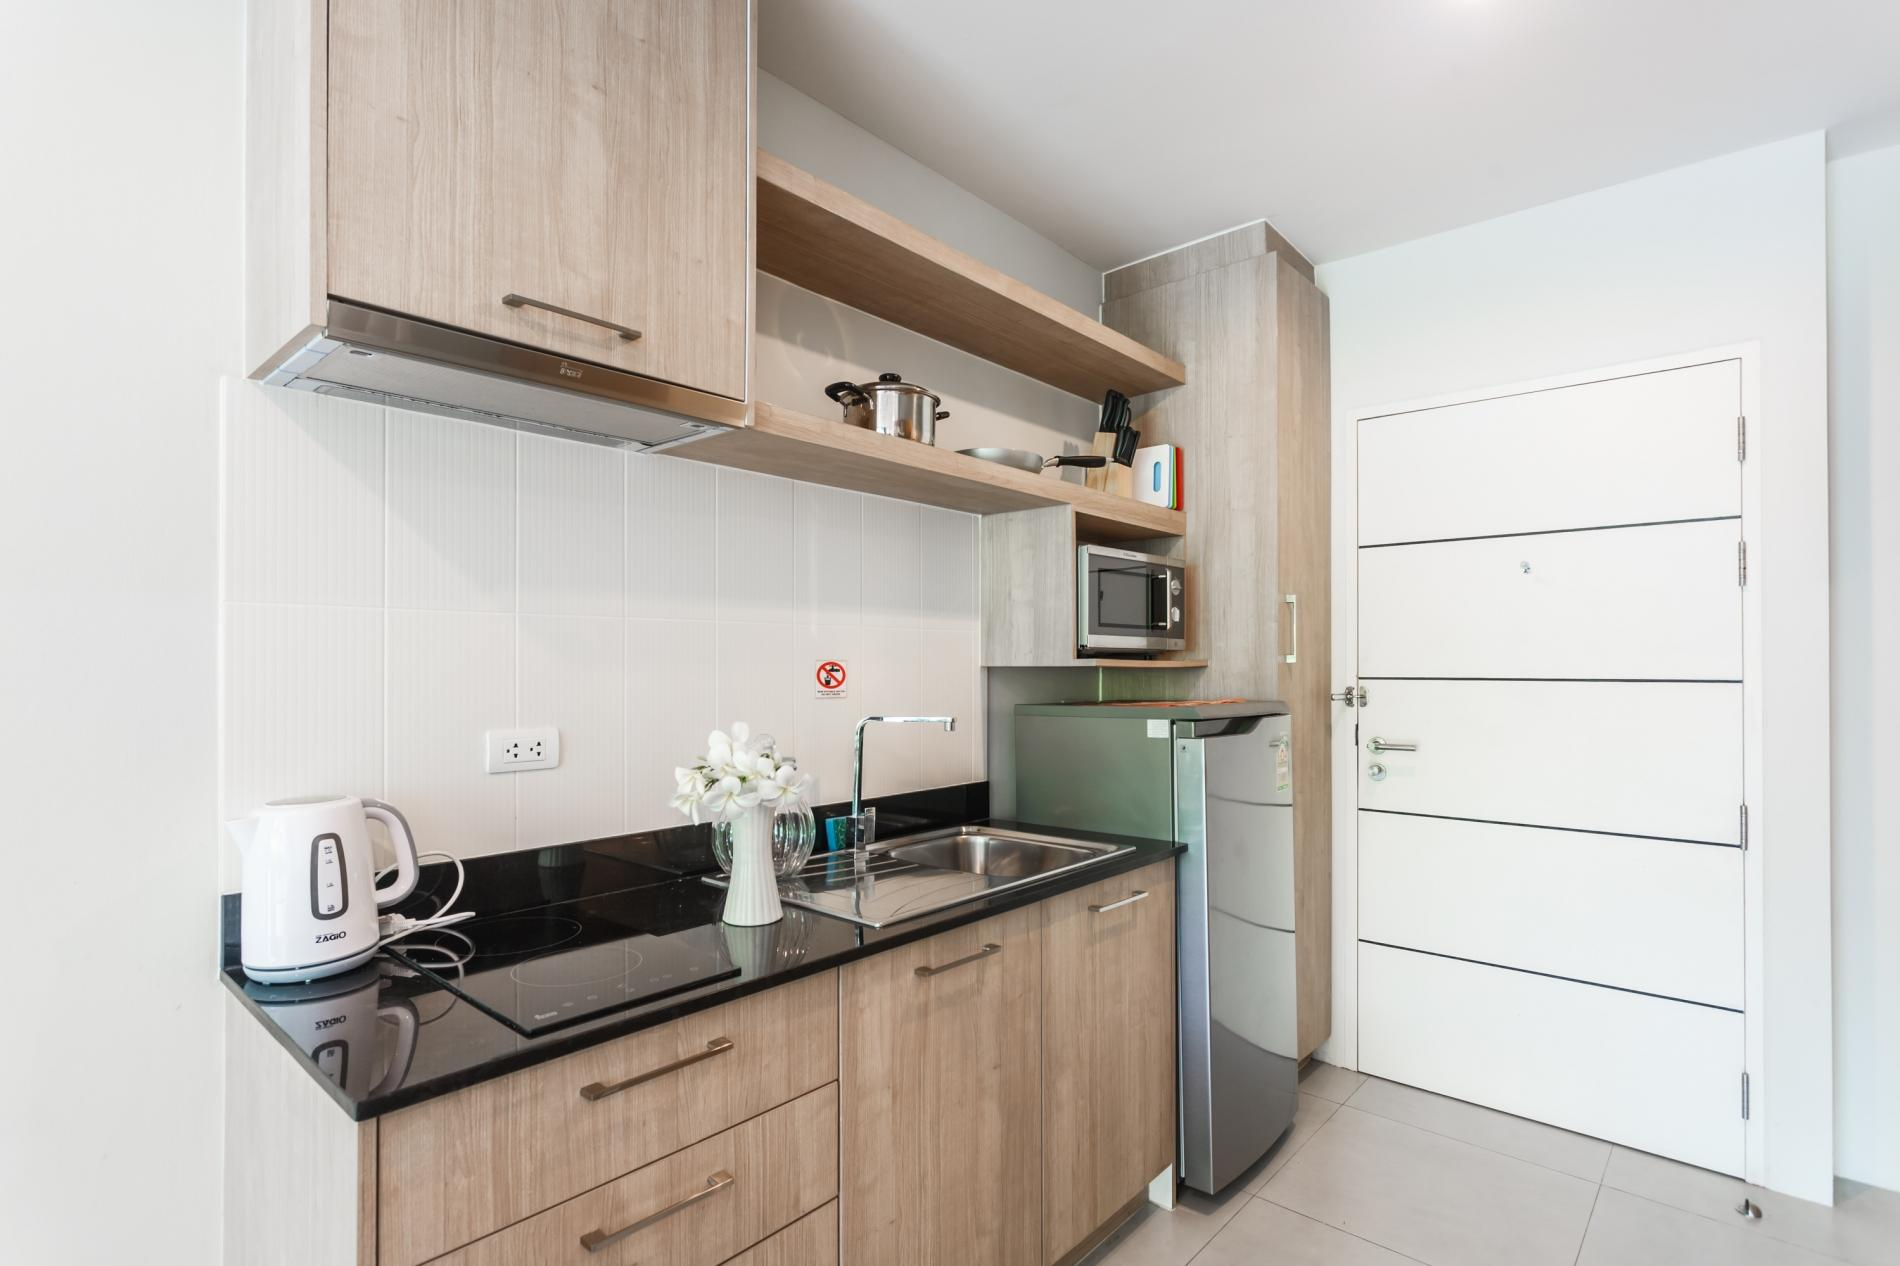 U208 - Patong Studio with kitchen, pool and private patio. photo 13758077